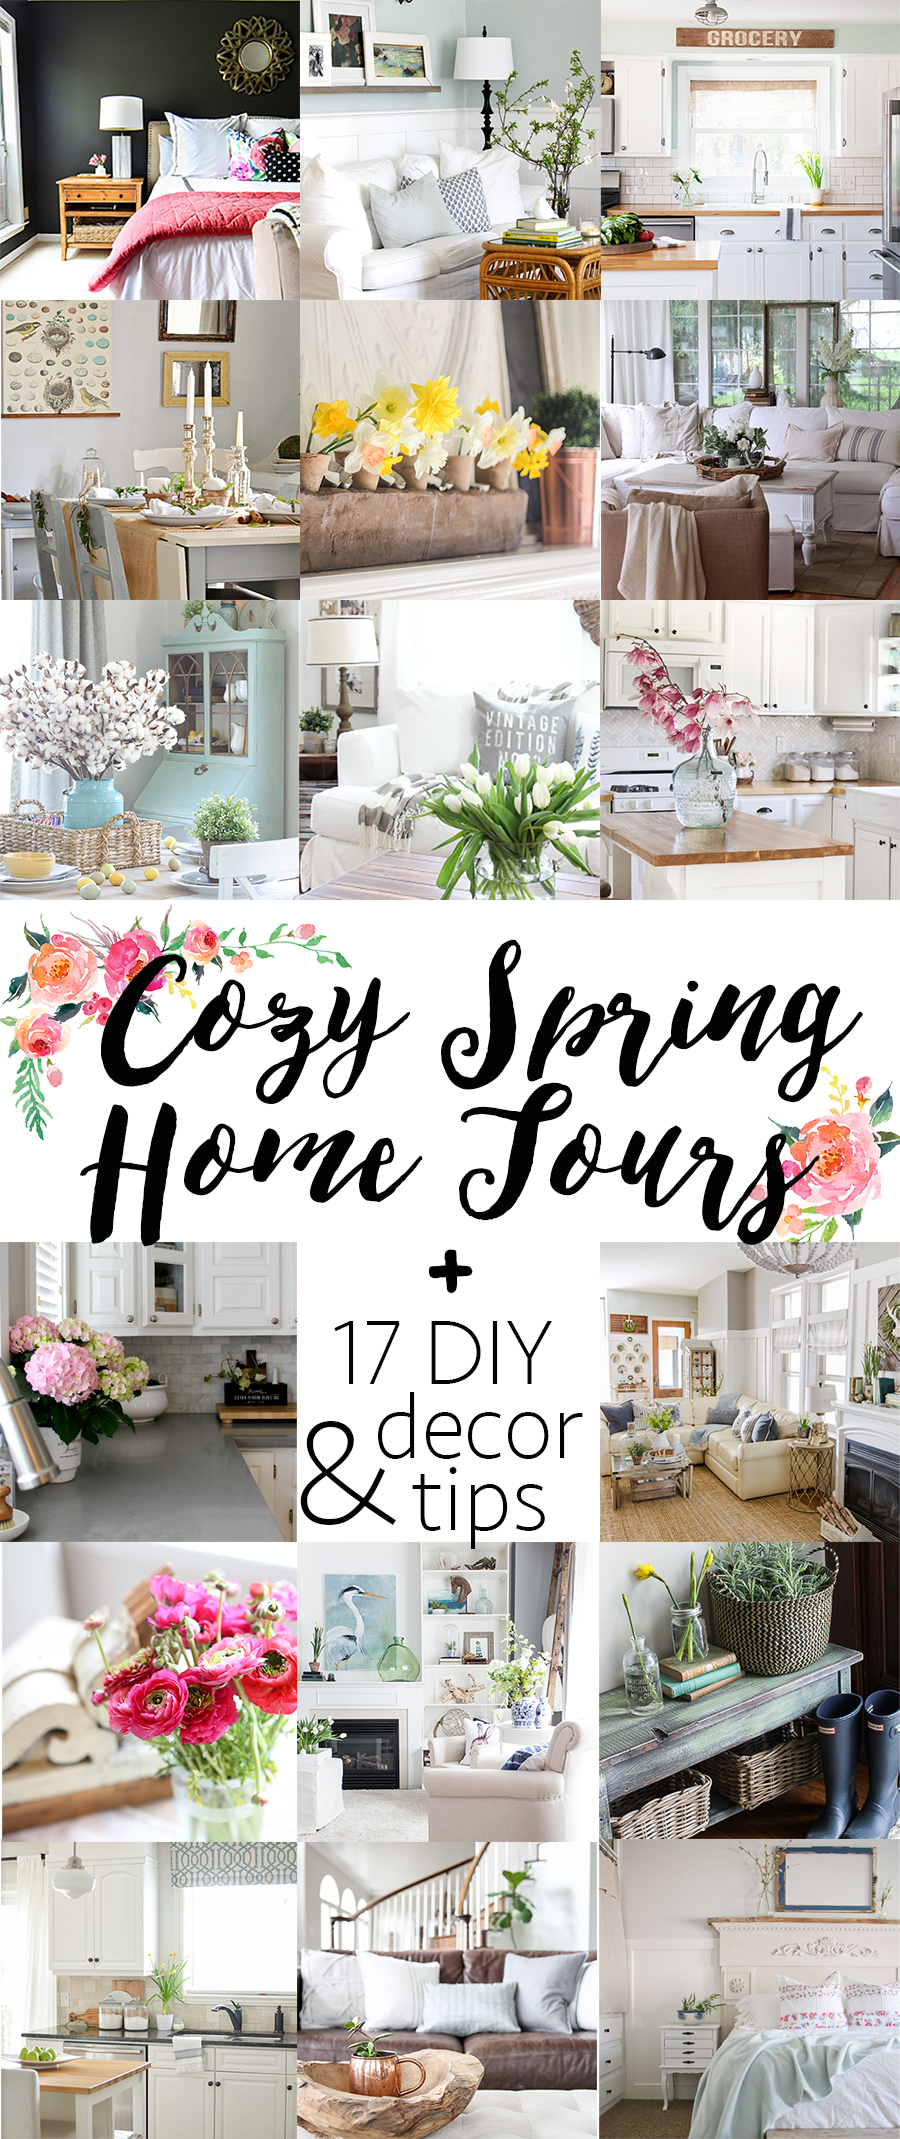 Visit 17 beautiful homes decorated for spring | A Burst of Beautiful